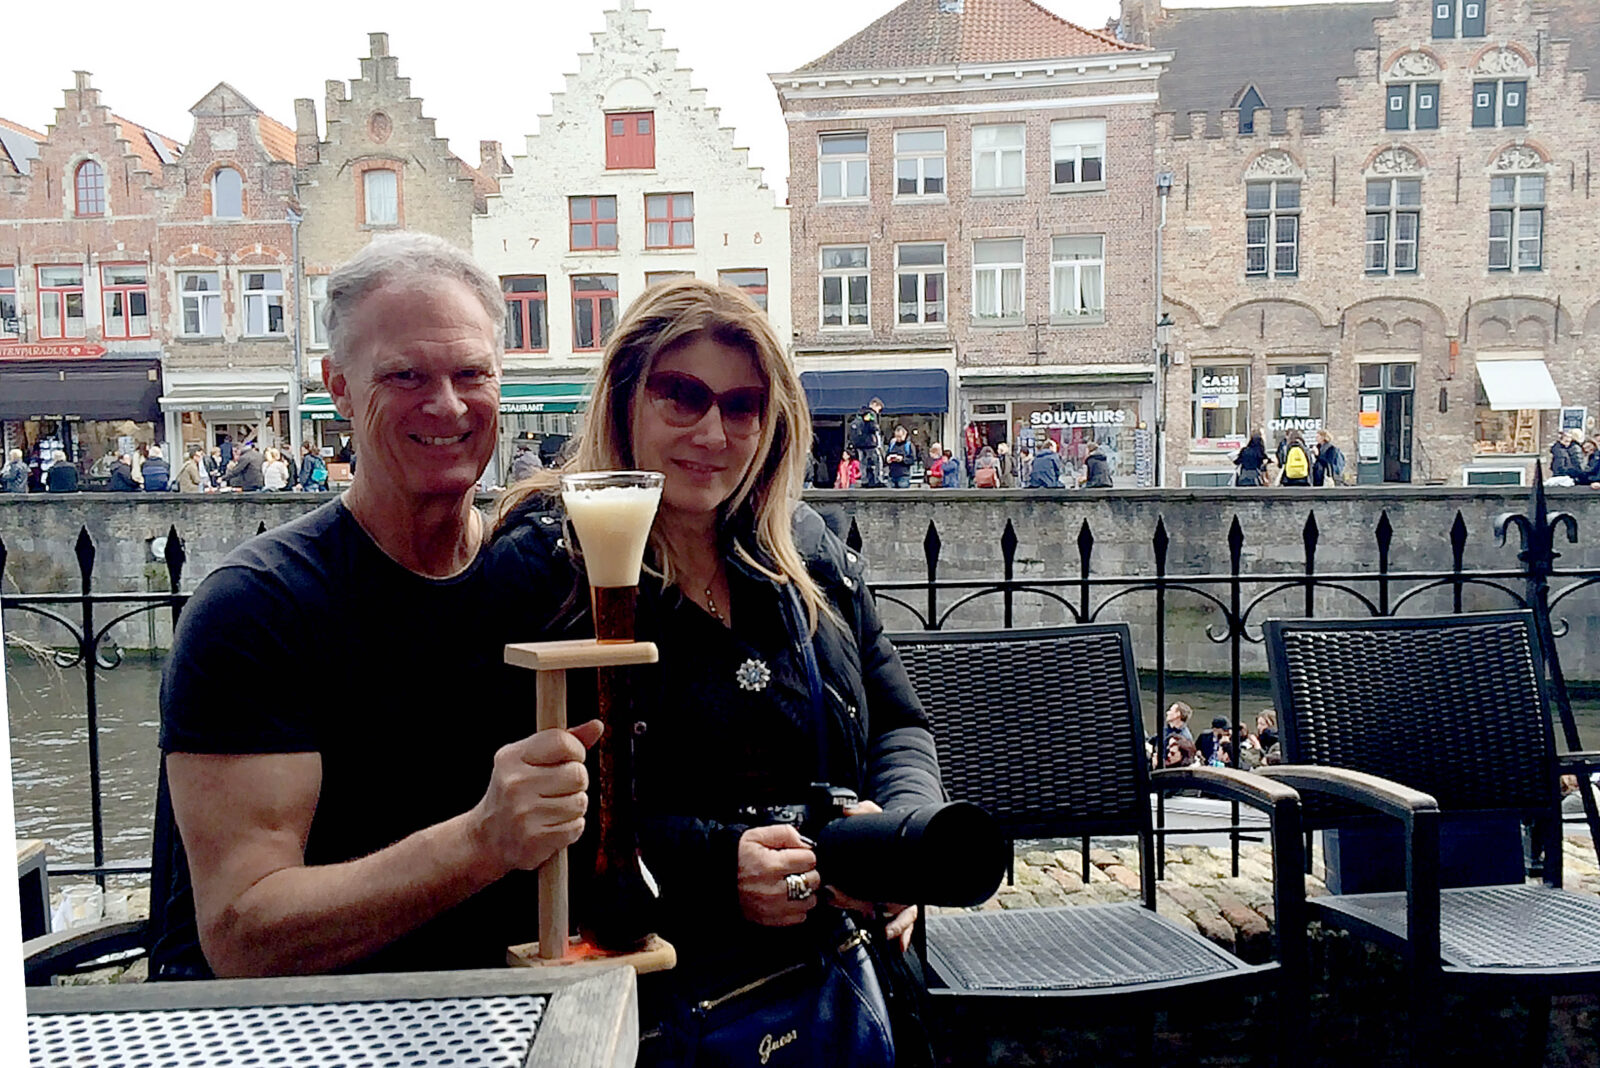 Me and Marina at 2be Beer Wall in Bruges, Belgium.